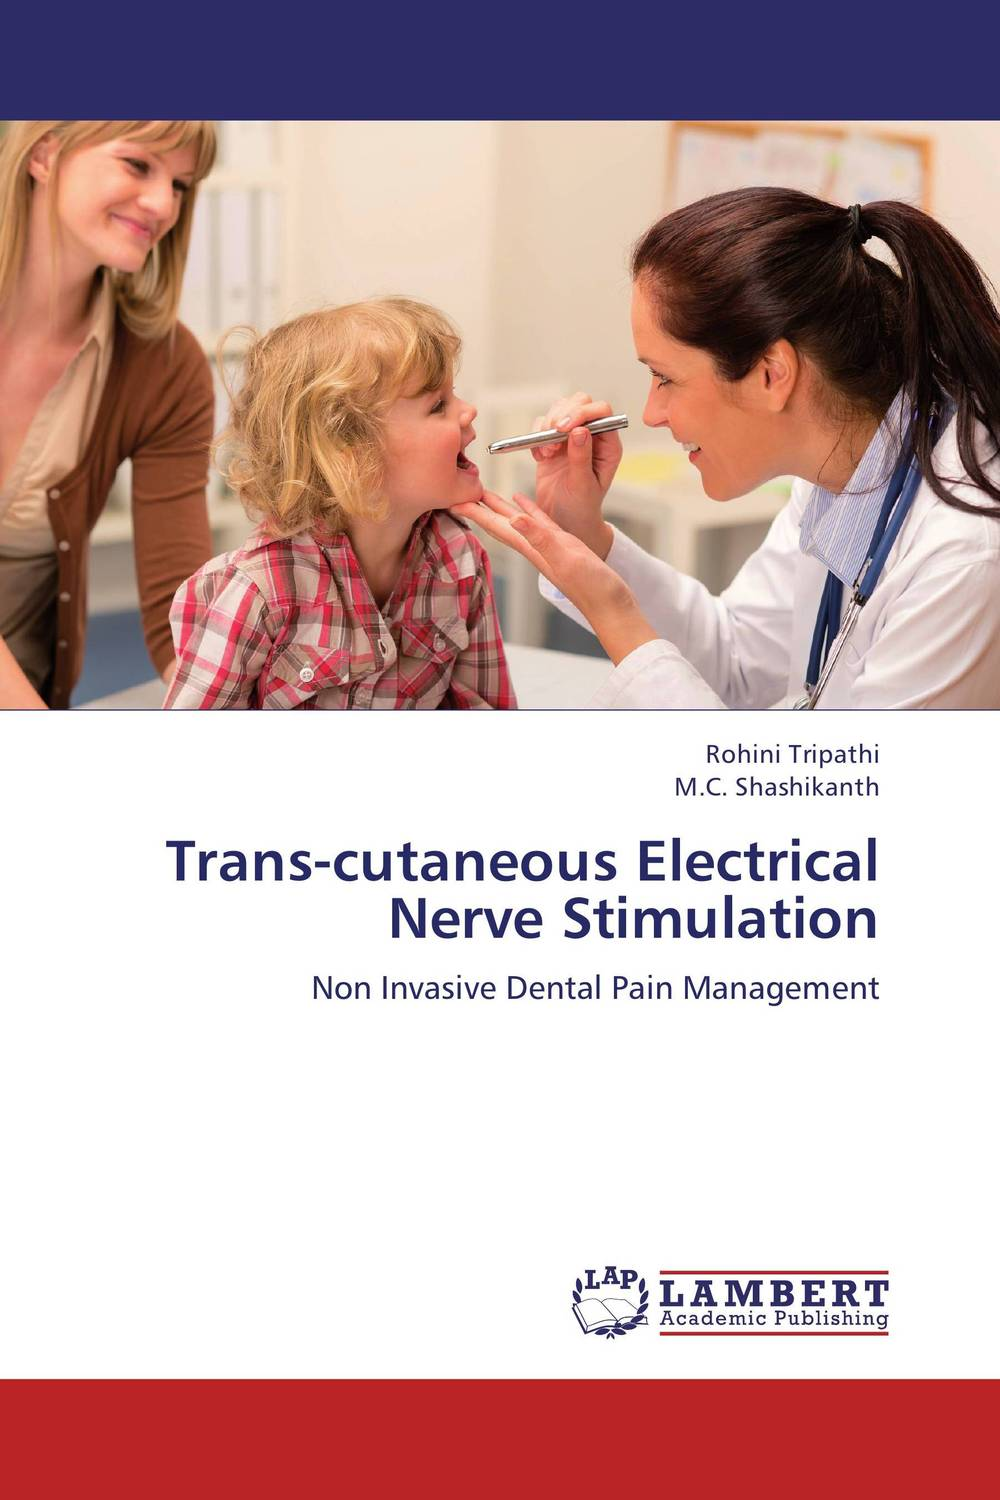 Trans-cutaneous Electrical Nerve Stimulation temporomandibular disorder